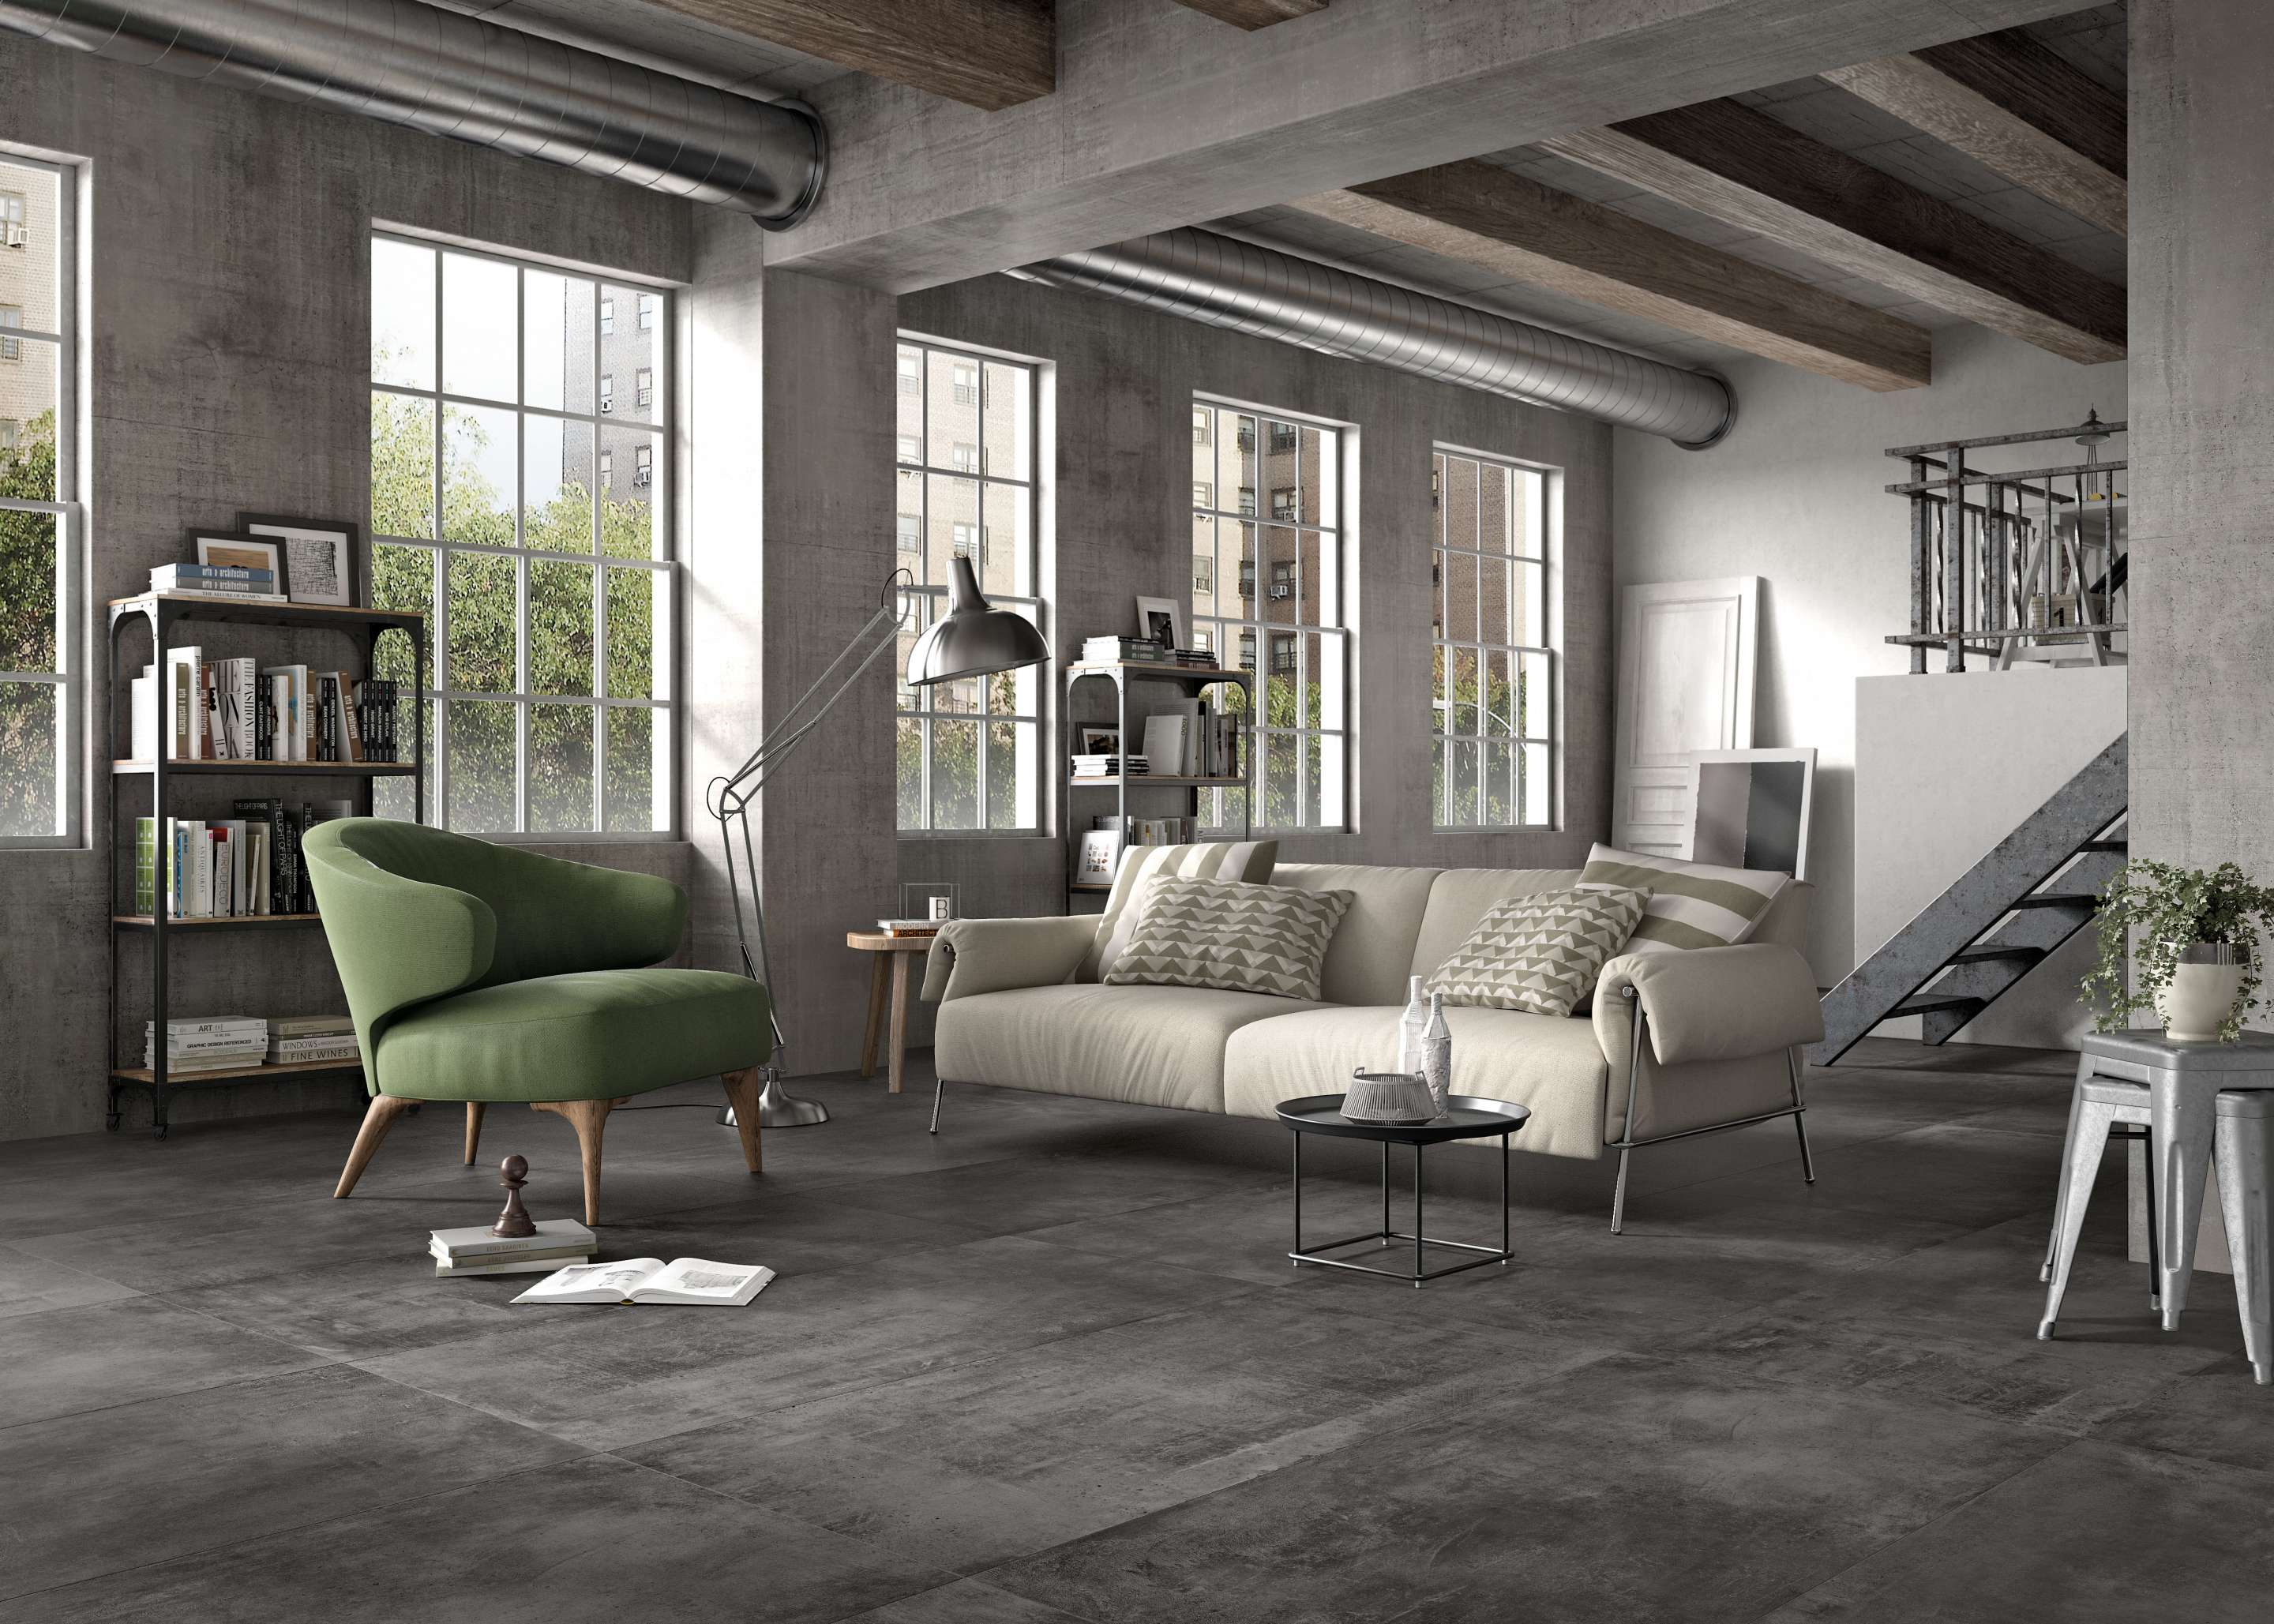 Anthrazit Betonfliesen im Wohnzimmer, anthracite concrete effect tiles in living room